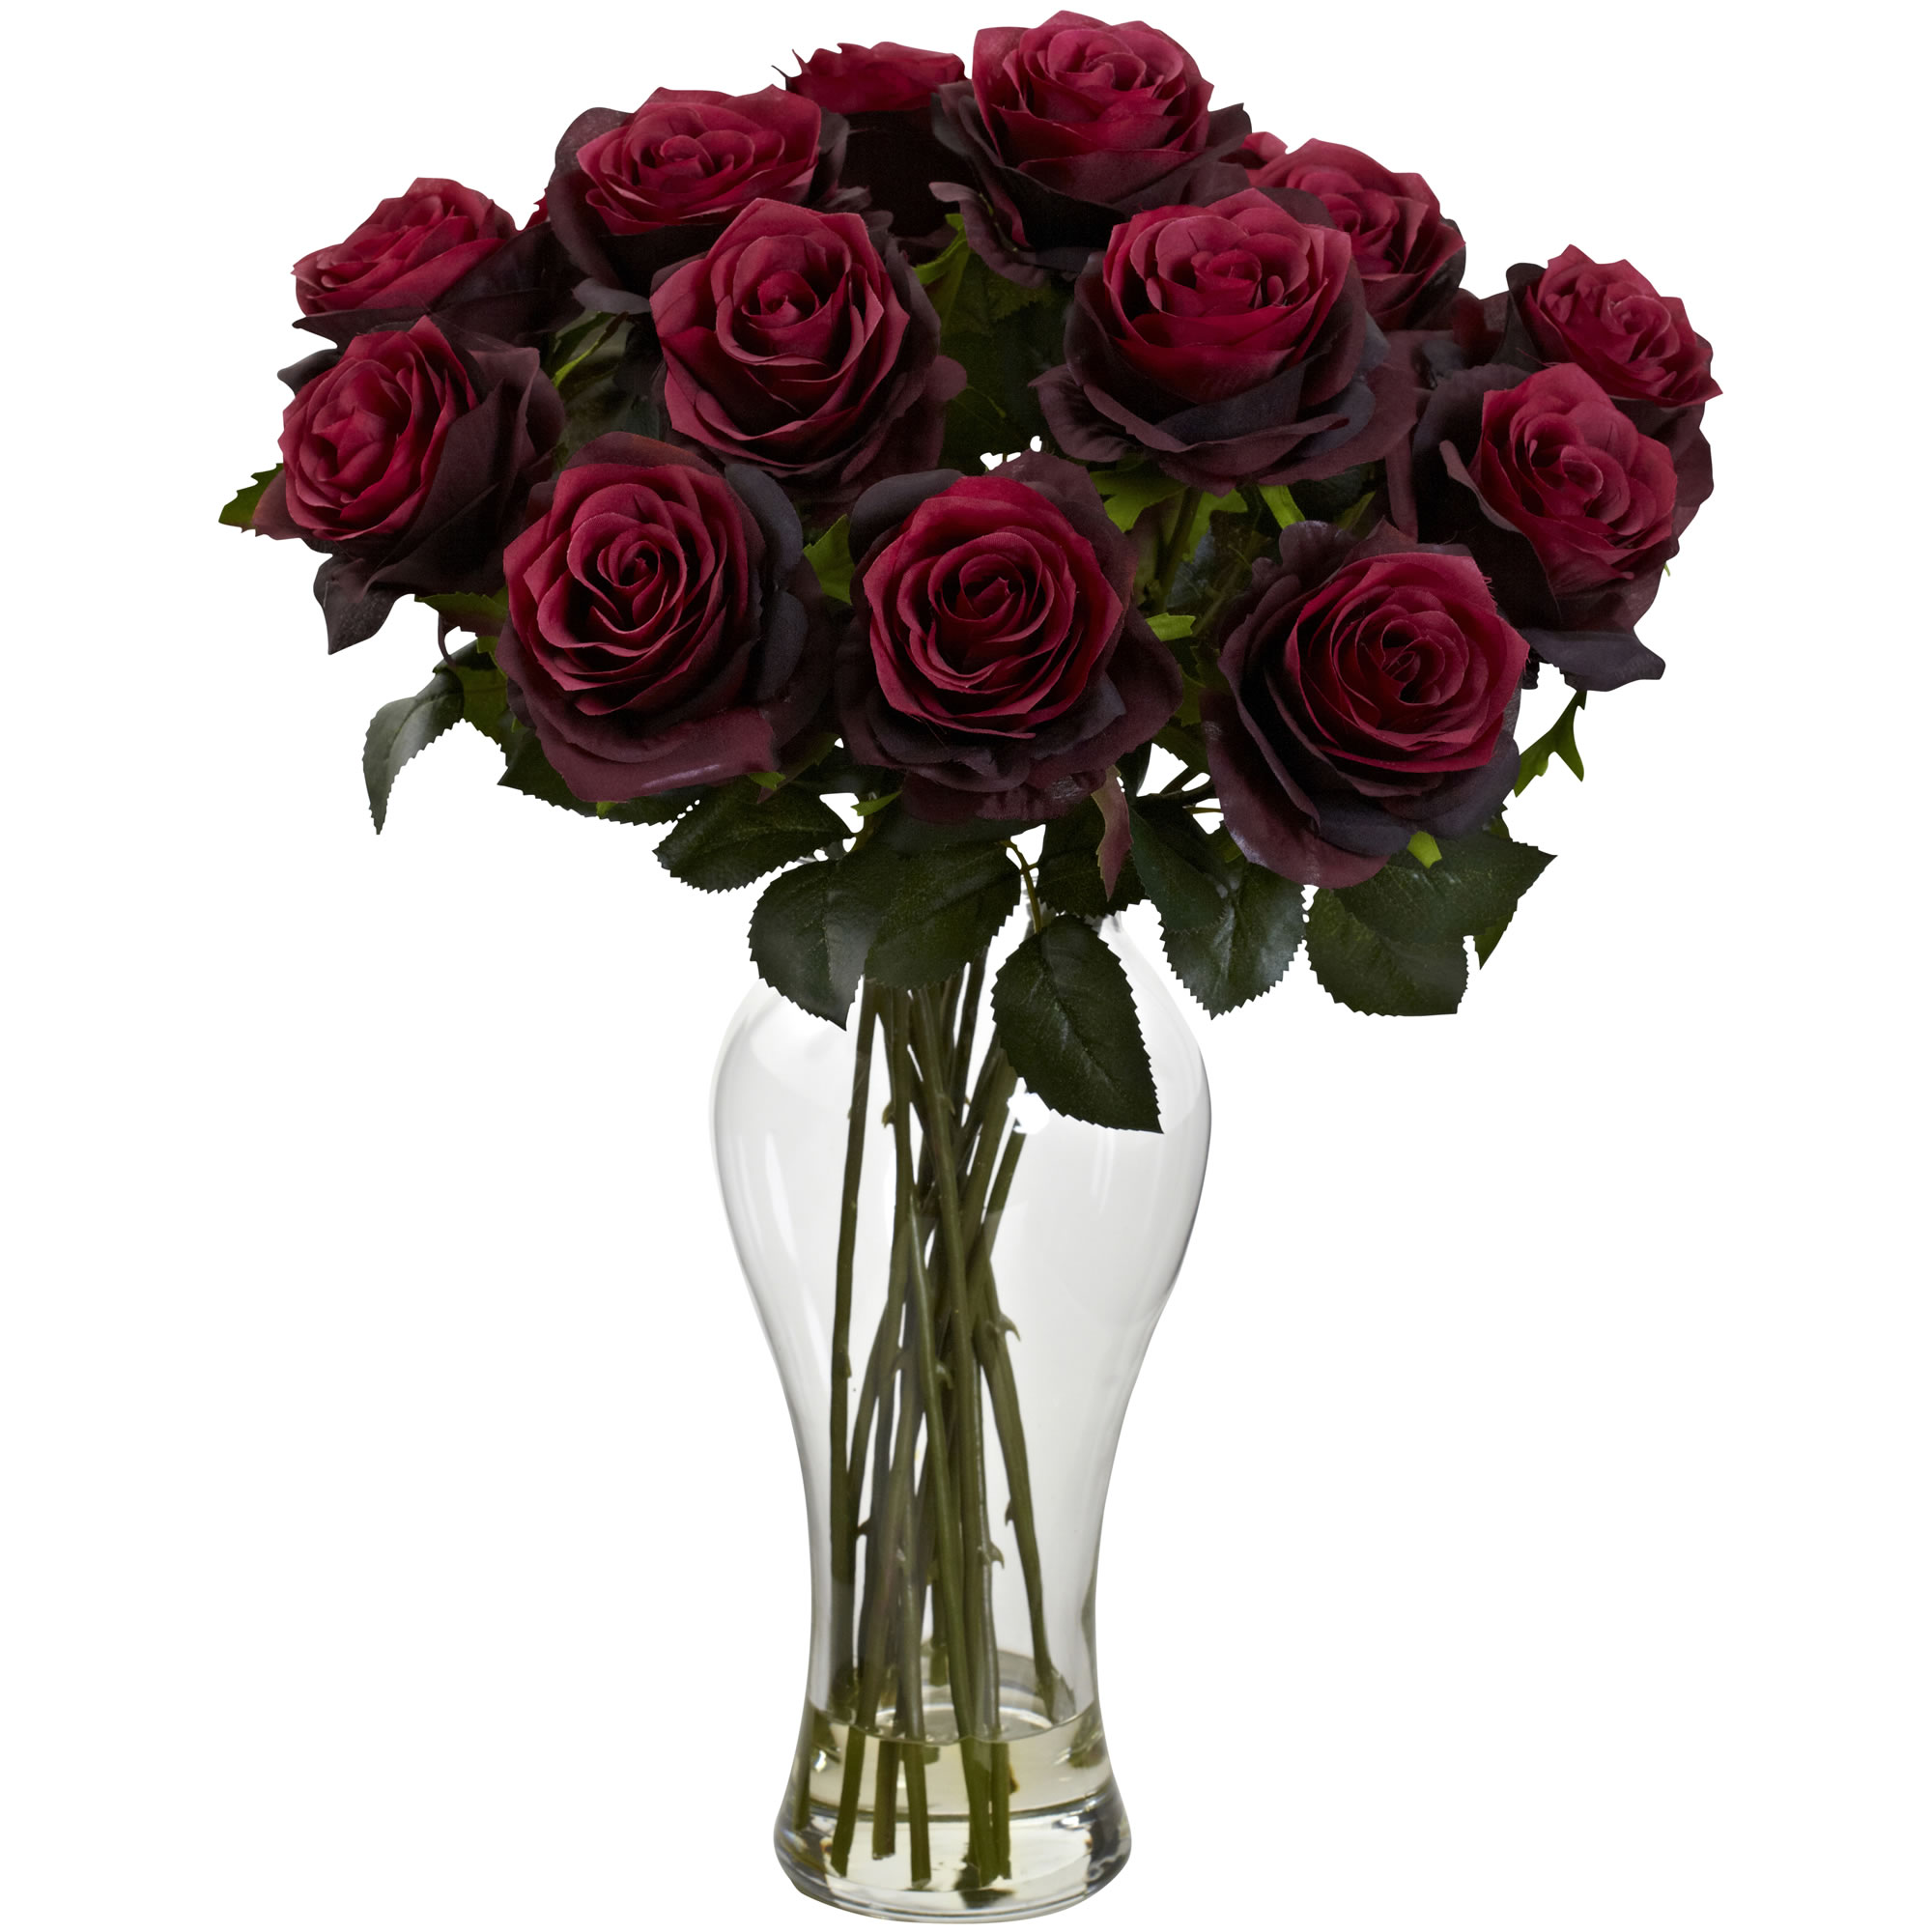 Artificial 18 blooming roses bouquet flowers arrangement faux image is loading artificial 18 034 blooming roses bouquet flowers arrangement izmirmasajfo